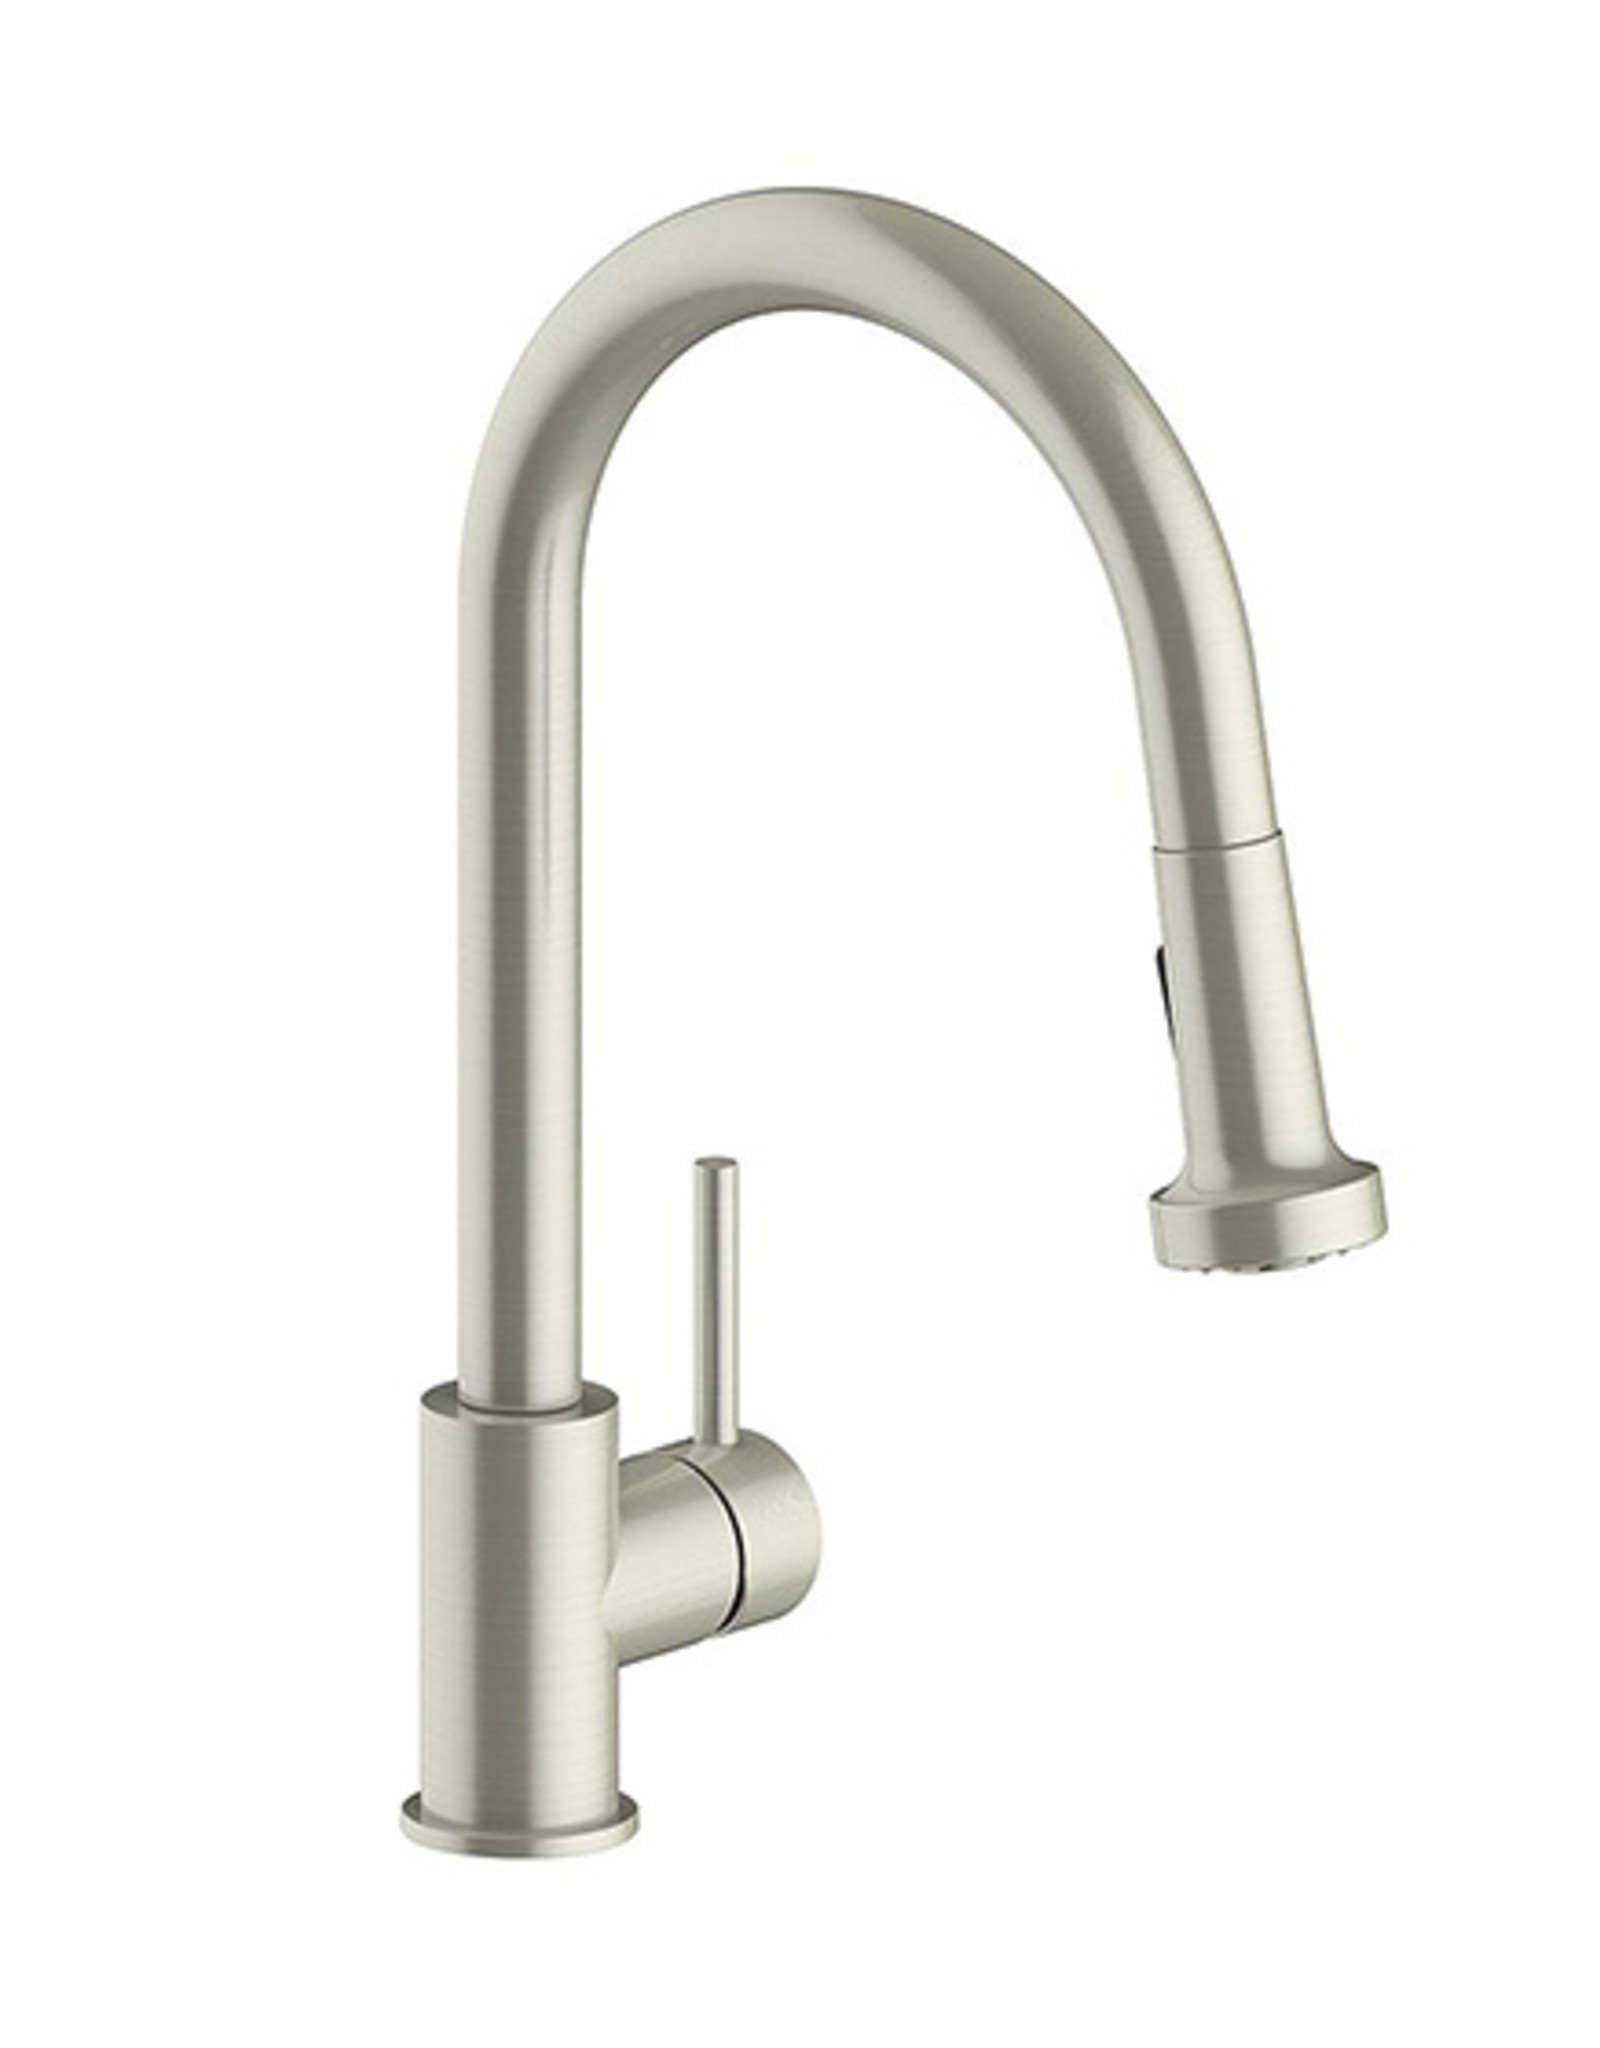 Vogt VOGT TRAUN A - KITCHEN FAUCET WITH 2-FUNCTION PULL-DOWN SPRAY